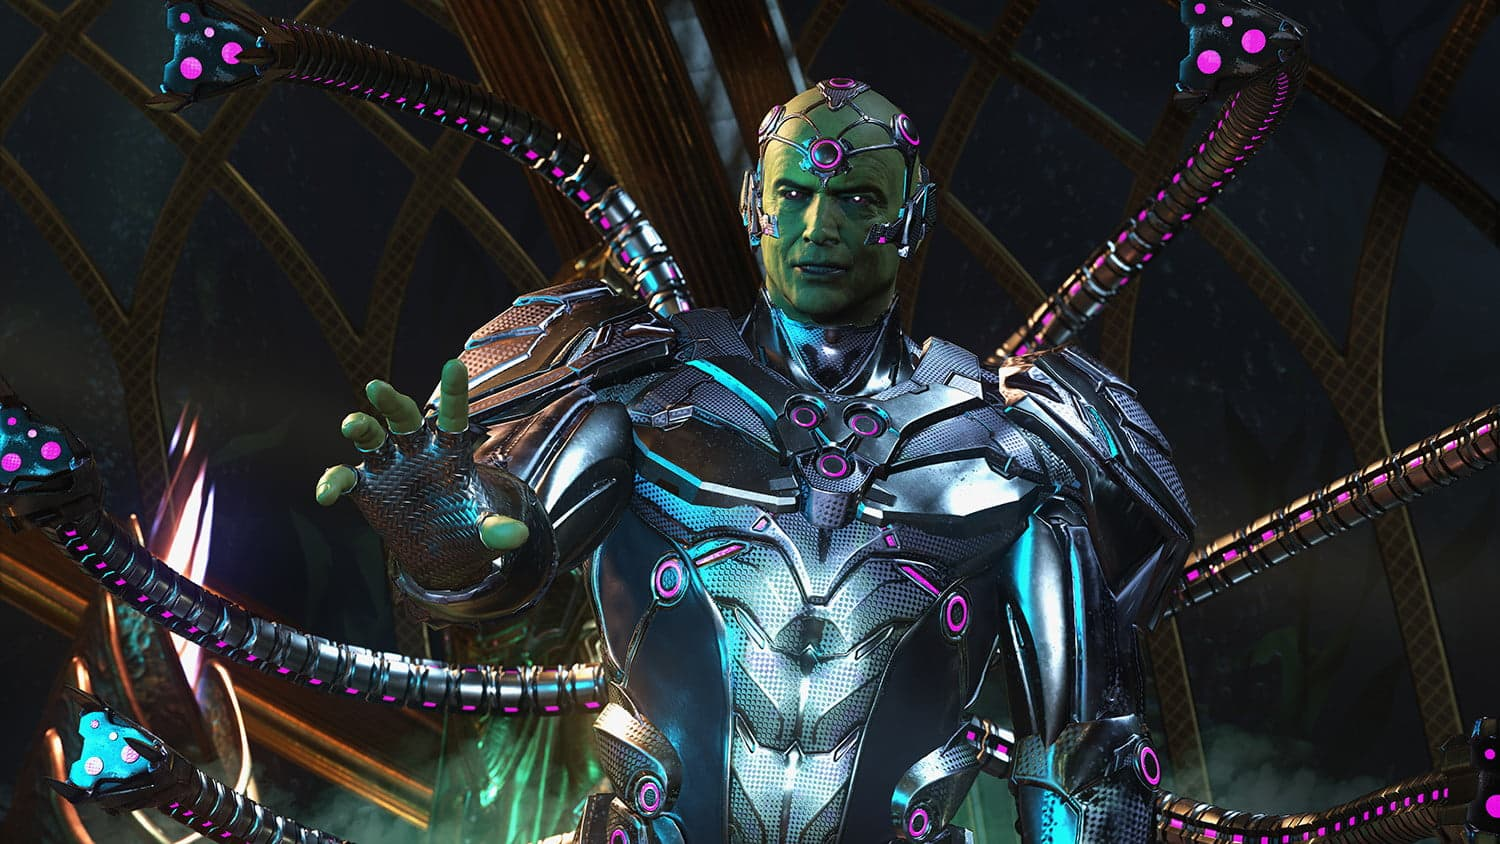 Injustice: Gods Among Us Injustice 2 video games are the DCEU DC Extended Universe we deserve from DC Comics - Batman Superman Flash Brainiac